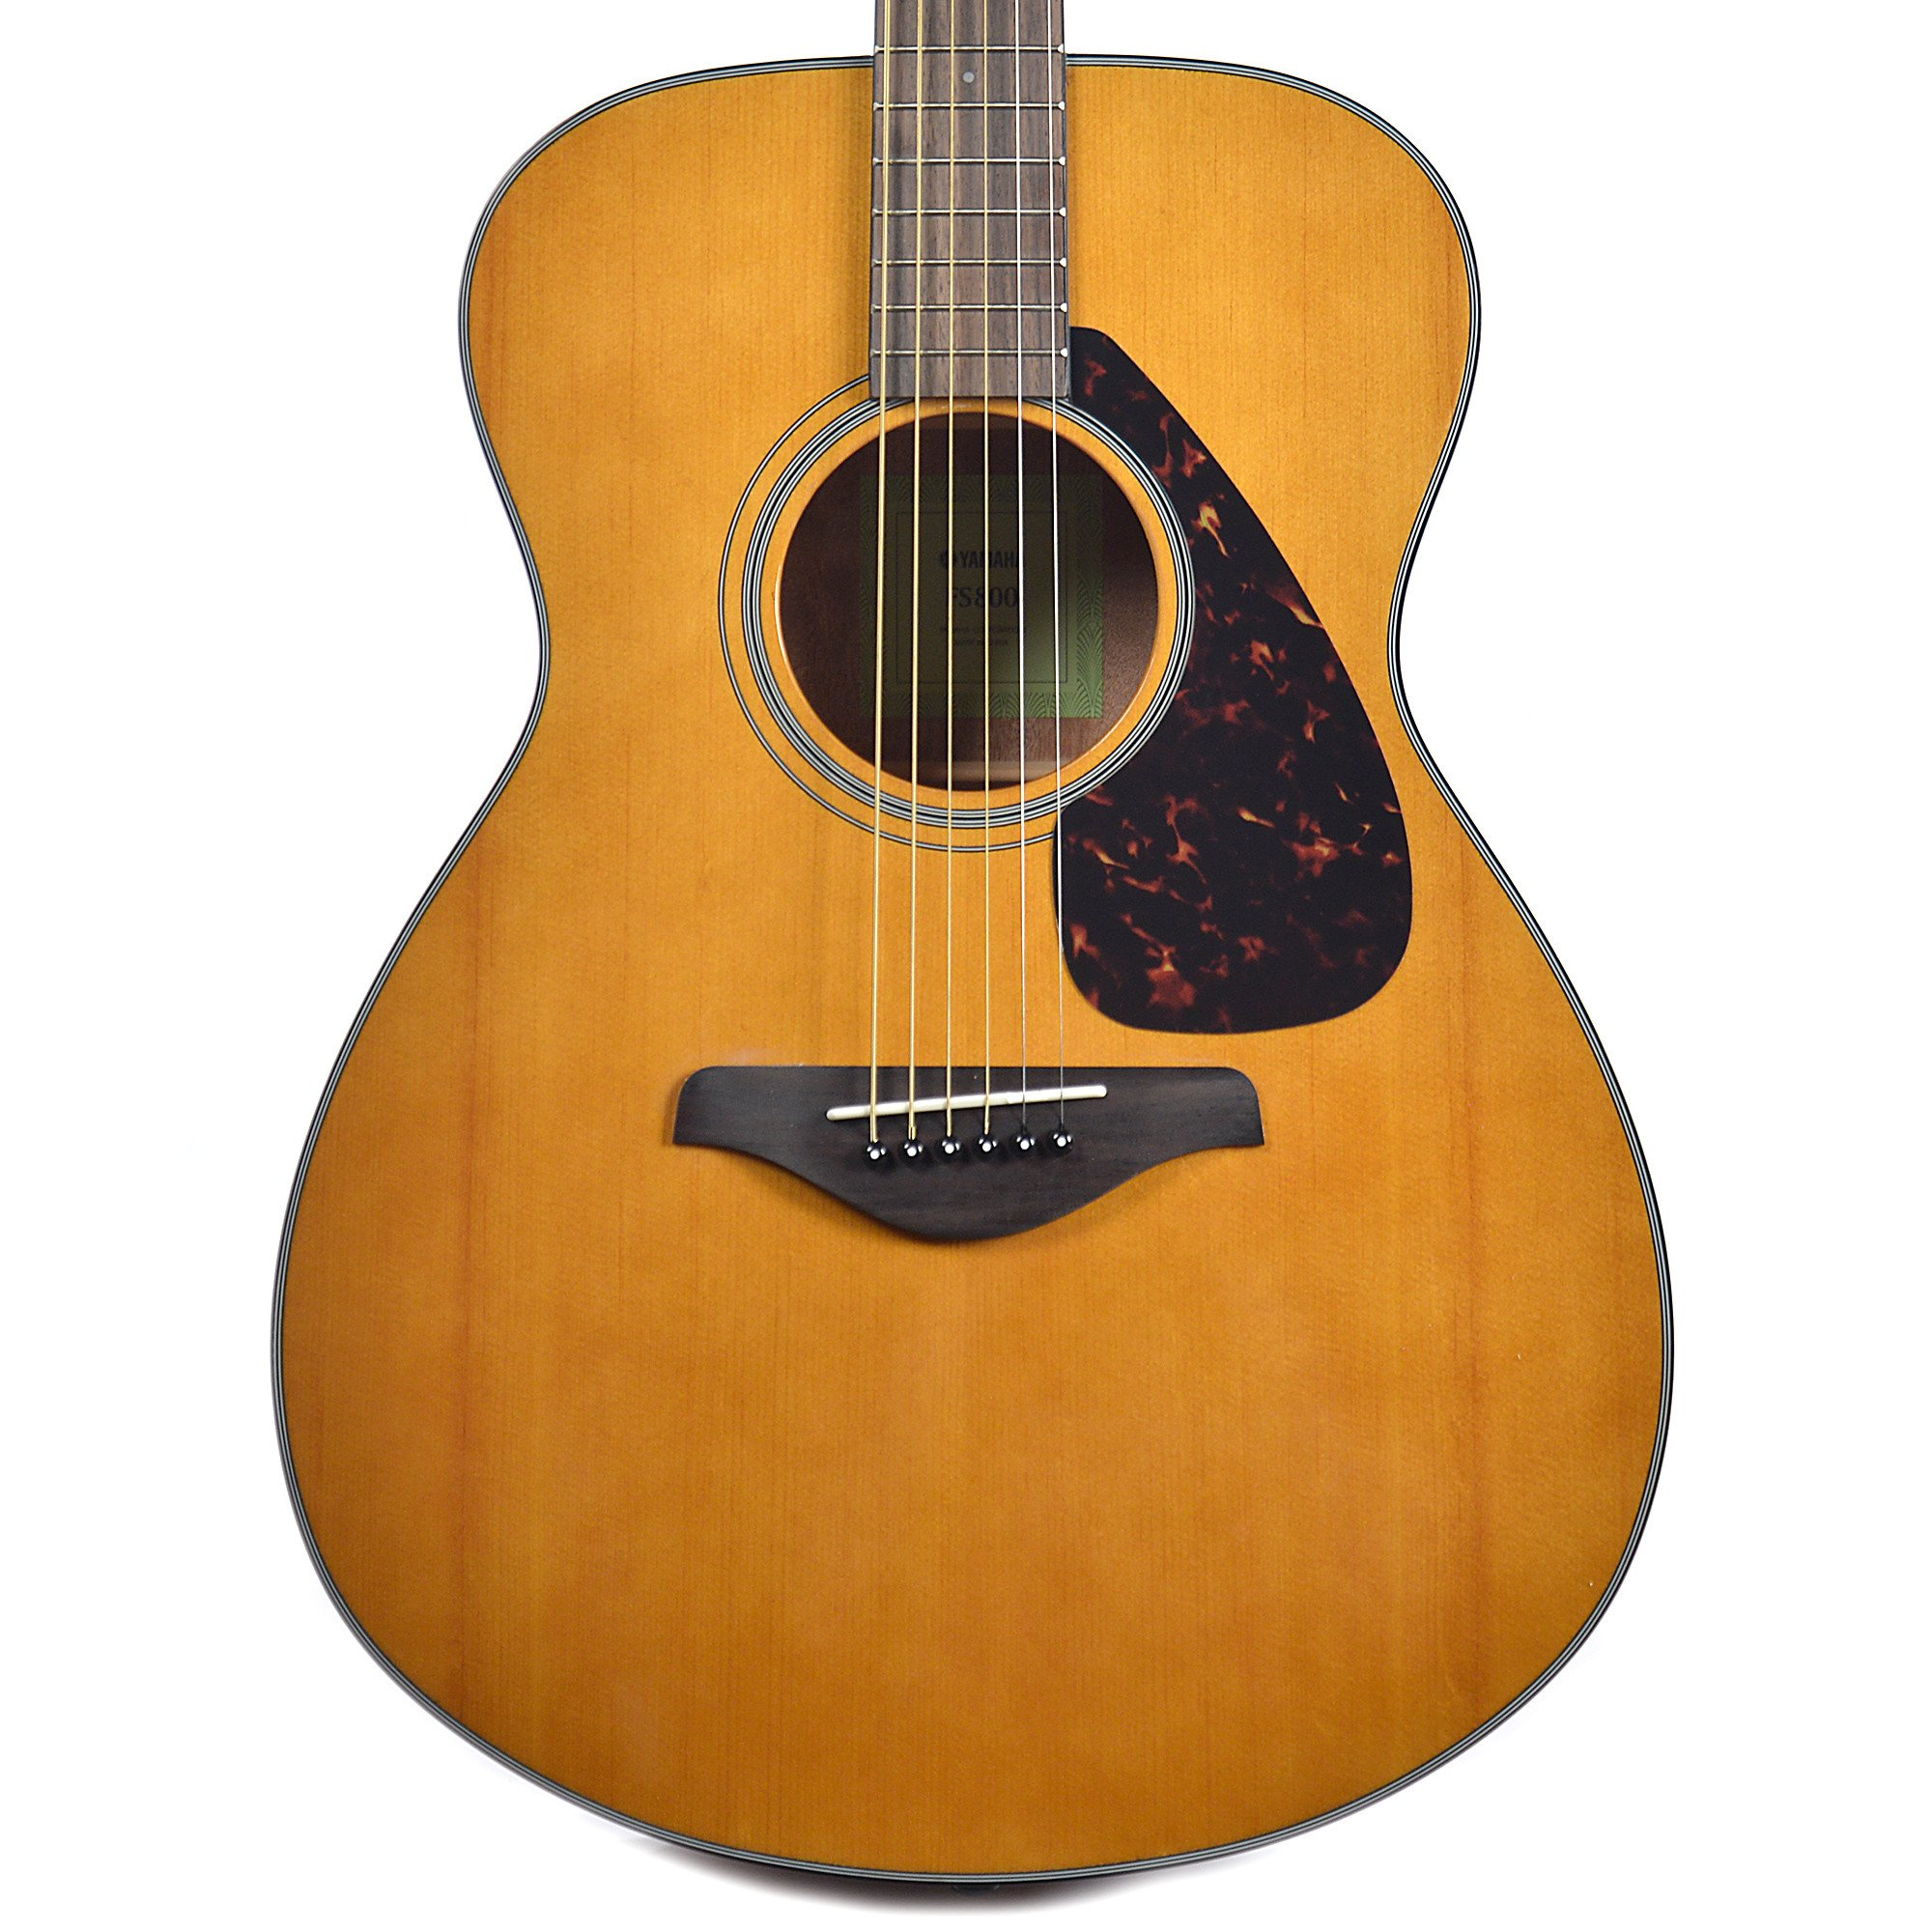 Yamaha FS800 T Concert Acoustic Limited Edition Tinted Natural Top by YAMAHA